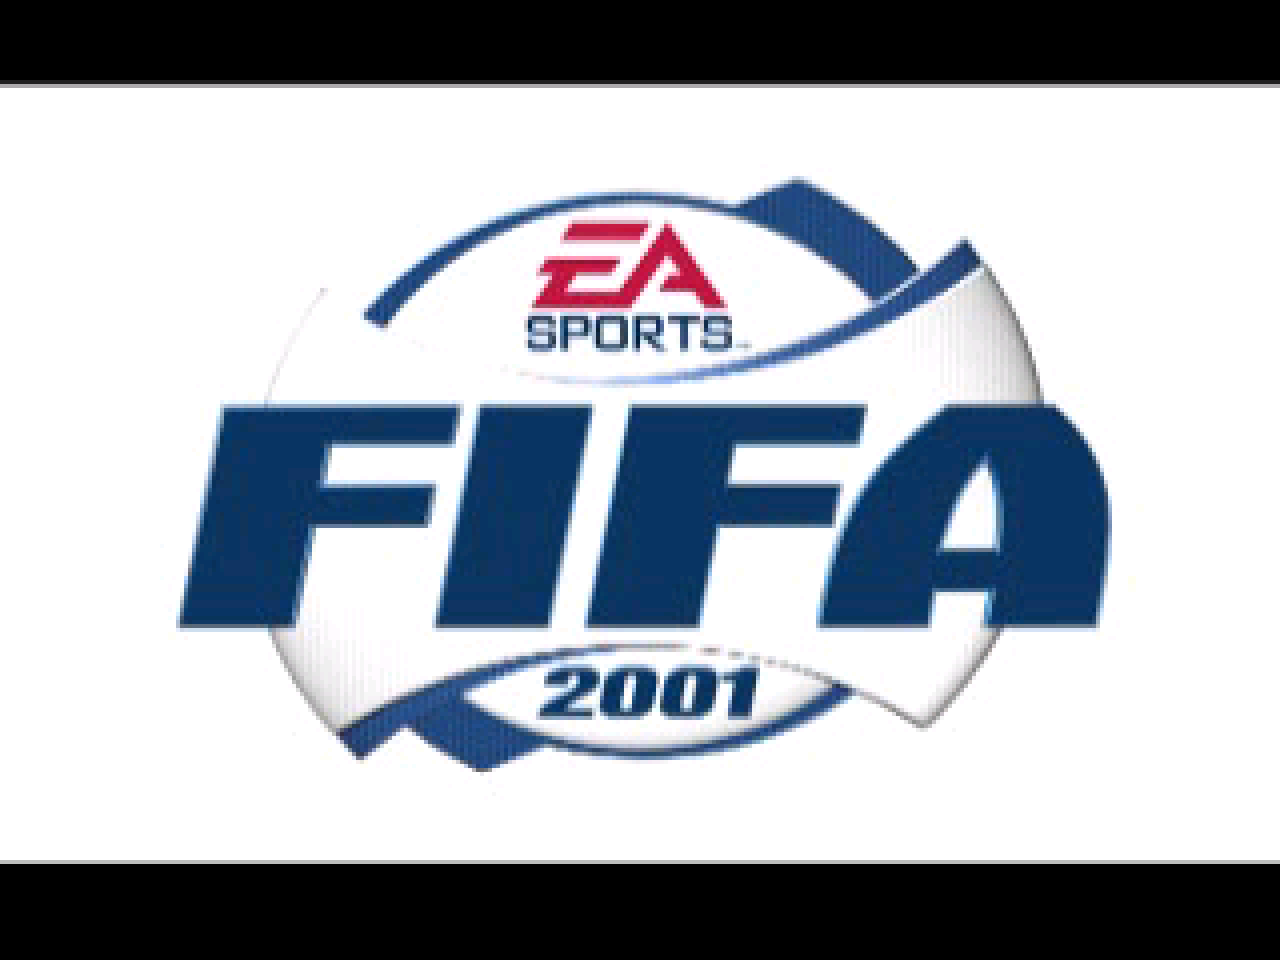 https://s3.eu-west-3.amazonaws.com/games.anthony-dessalles.com/FIFA 2001 PS1 2020 - Screenshots/FIFA 2001-201123-182332.png